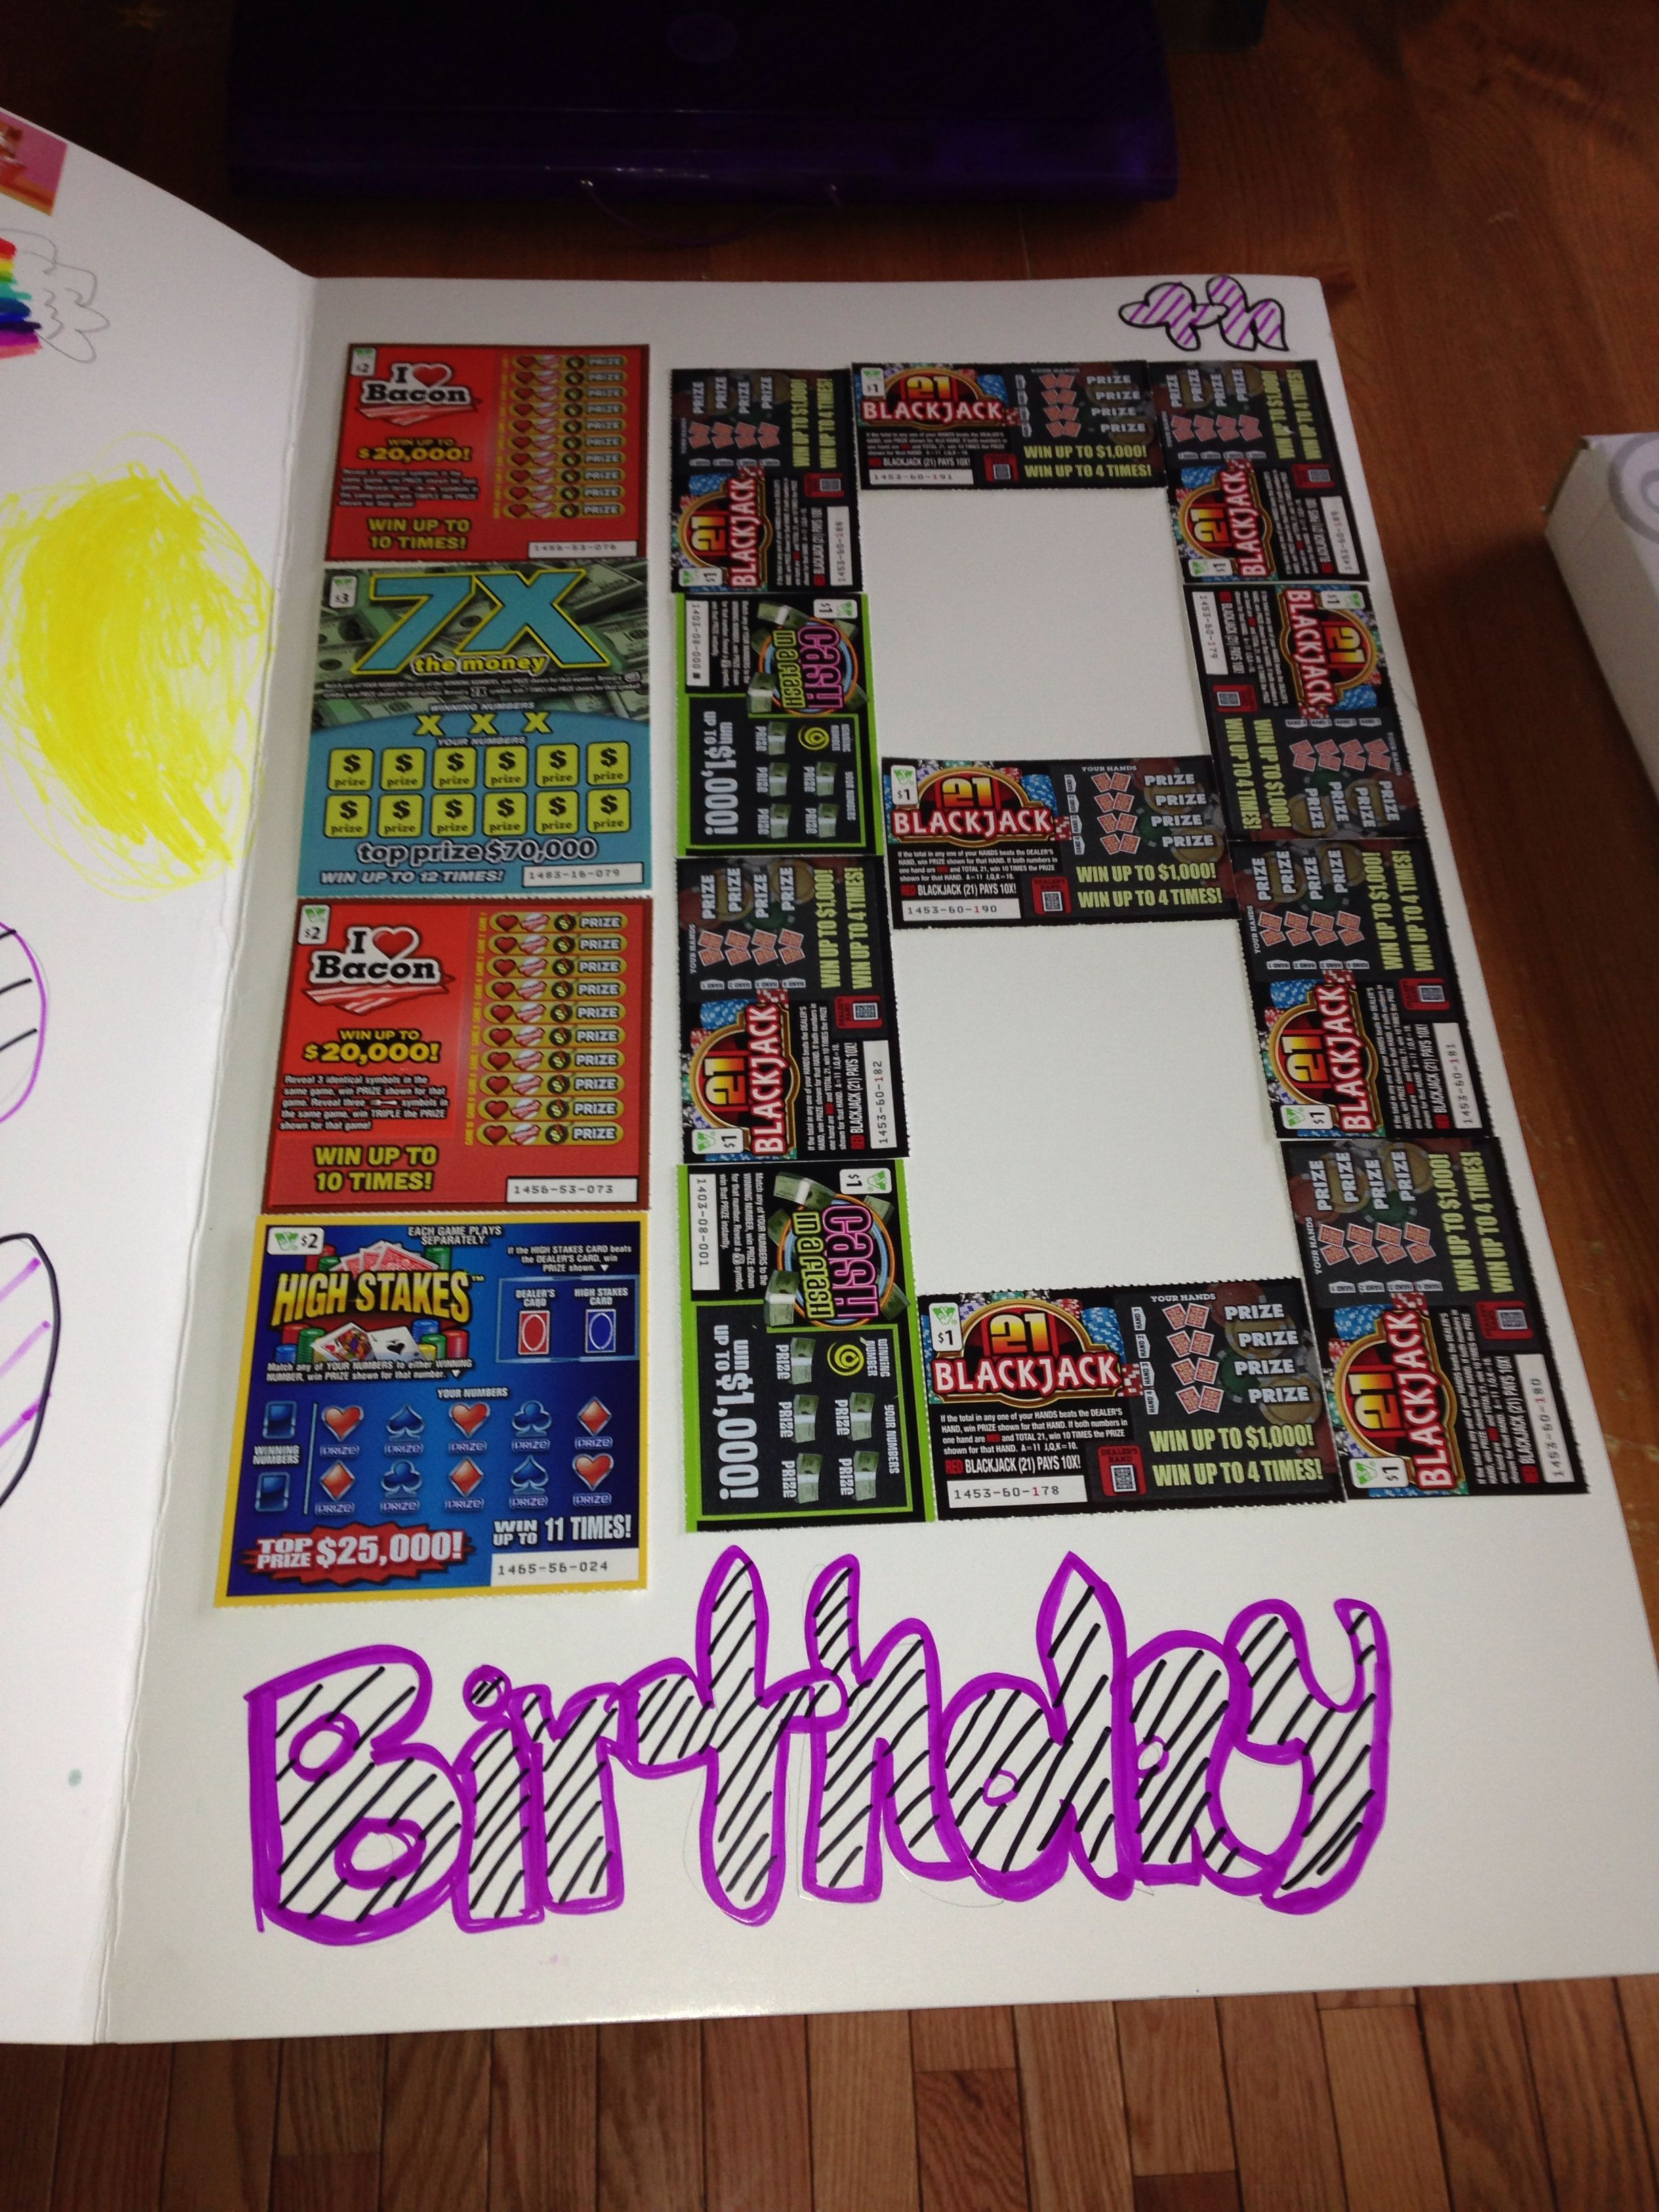 Best ideas about Good Birthday Ideas . Save or Pin Scratch f lottery tickets Great 18th birthday idea Now.